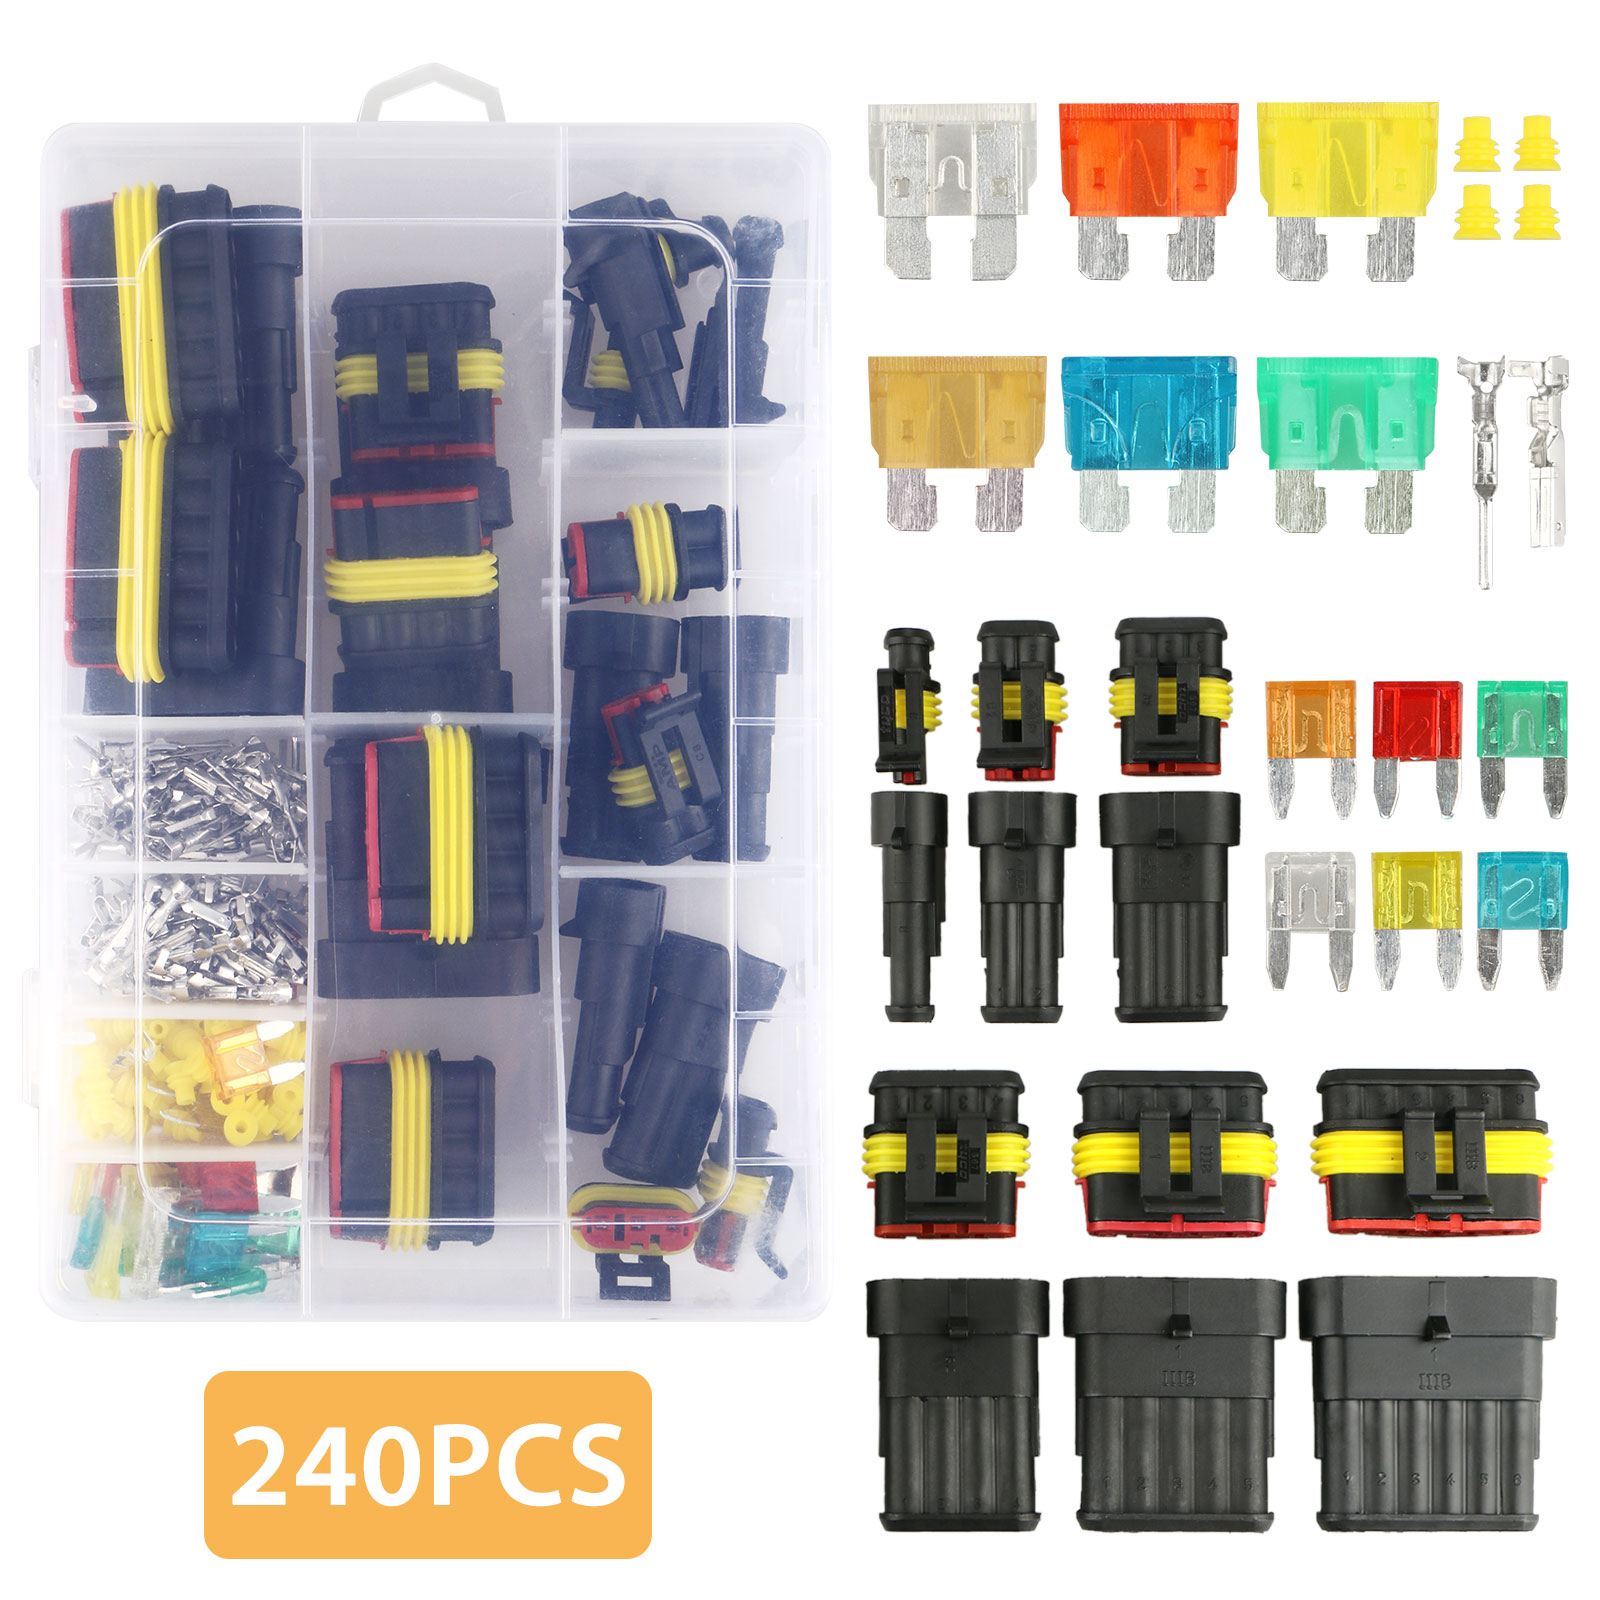 TSV 240PCS 1 2 3 4 5 6 Pin Waterproof Car Auto Electrical Wire Connector Terminal Plug with 5-30 AMP Blade Fuses Assortment Kit for Motorcycle, Scooter, Car, Truck, Boats